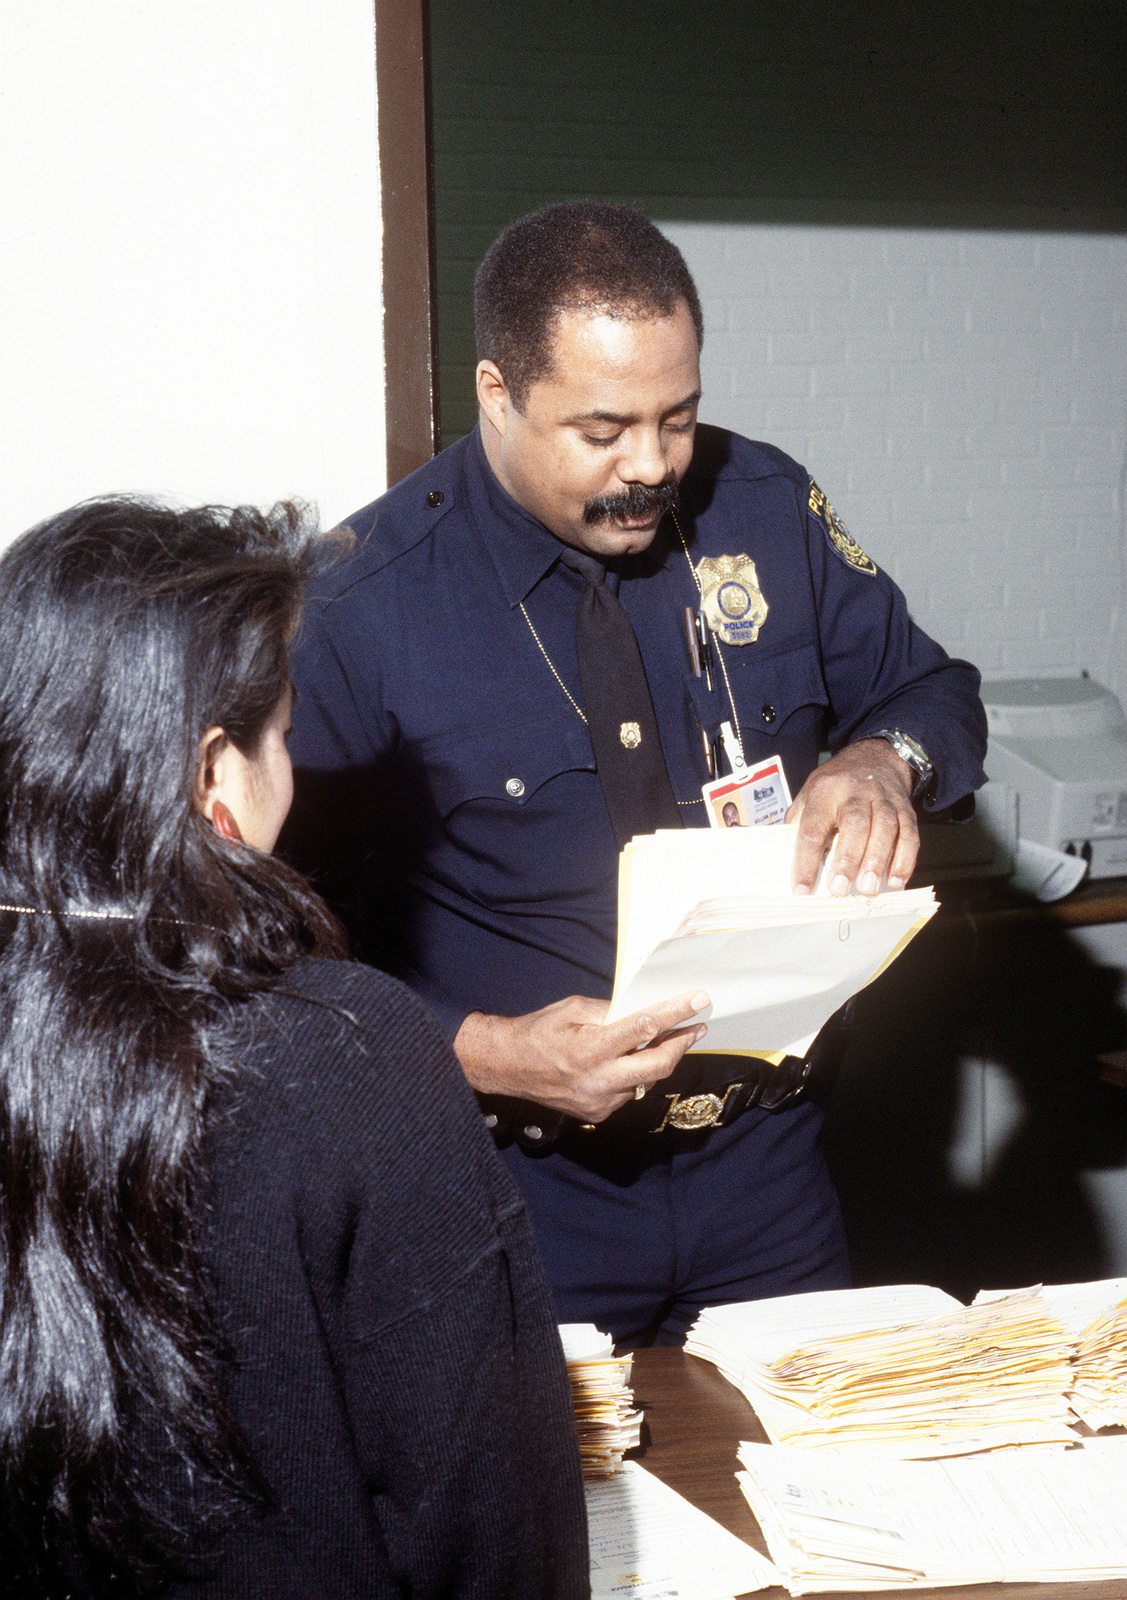 Armed Forces Inaugural Committee Behind the Scenes. Identification badges being processed at building 159 for access to the Presidential Inaugural Committee (PIC) and the Armed Forces Inaugural Committee (AFIC) buildings